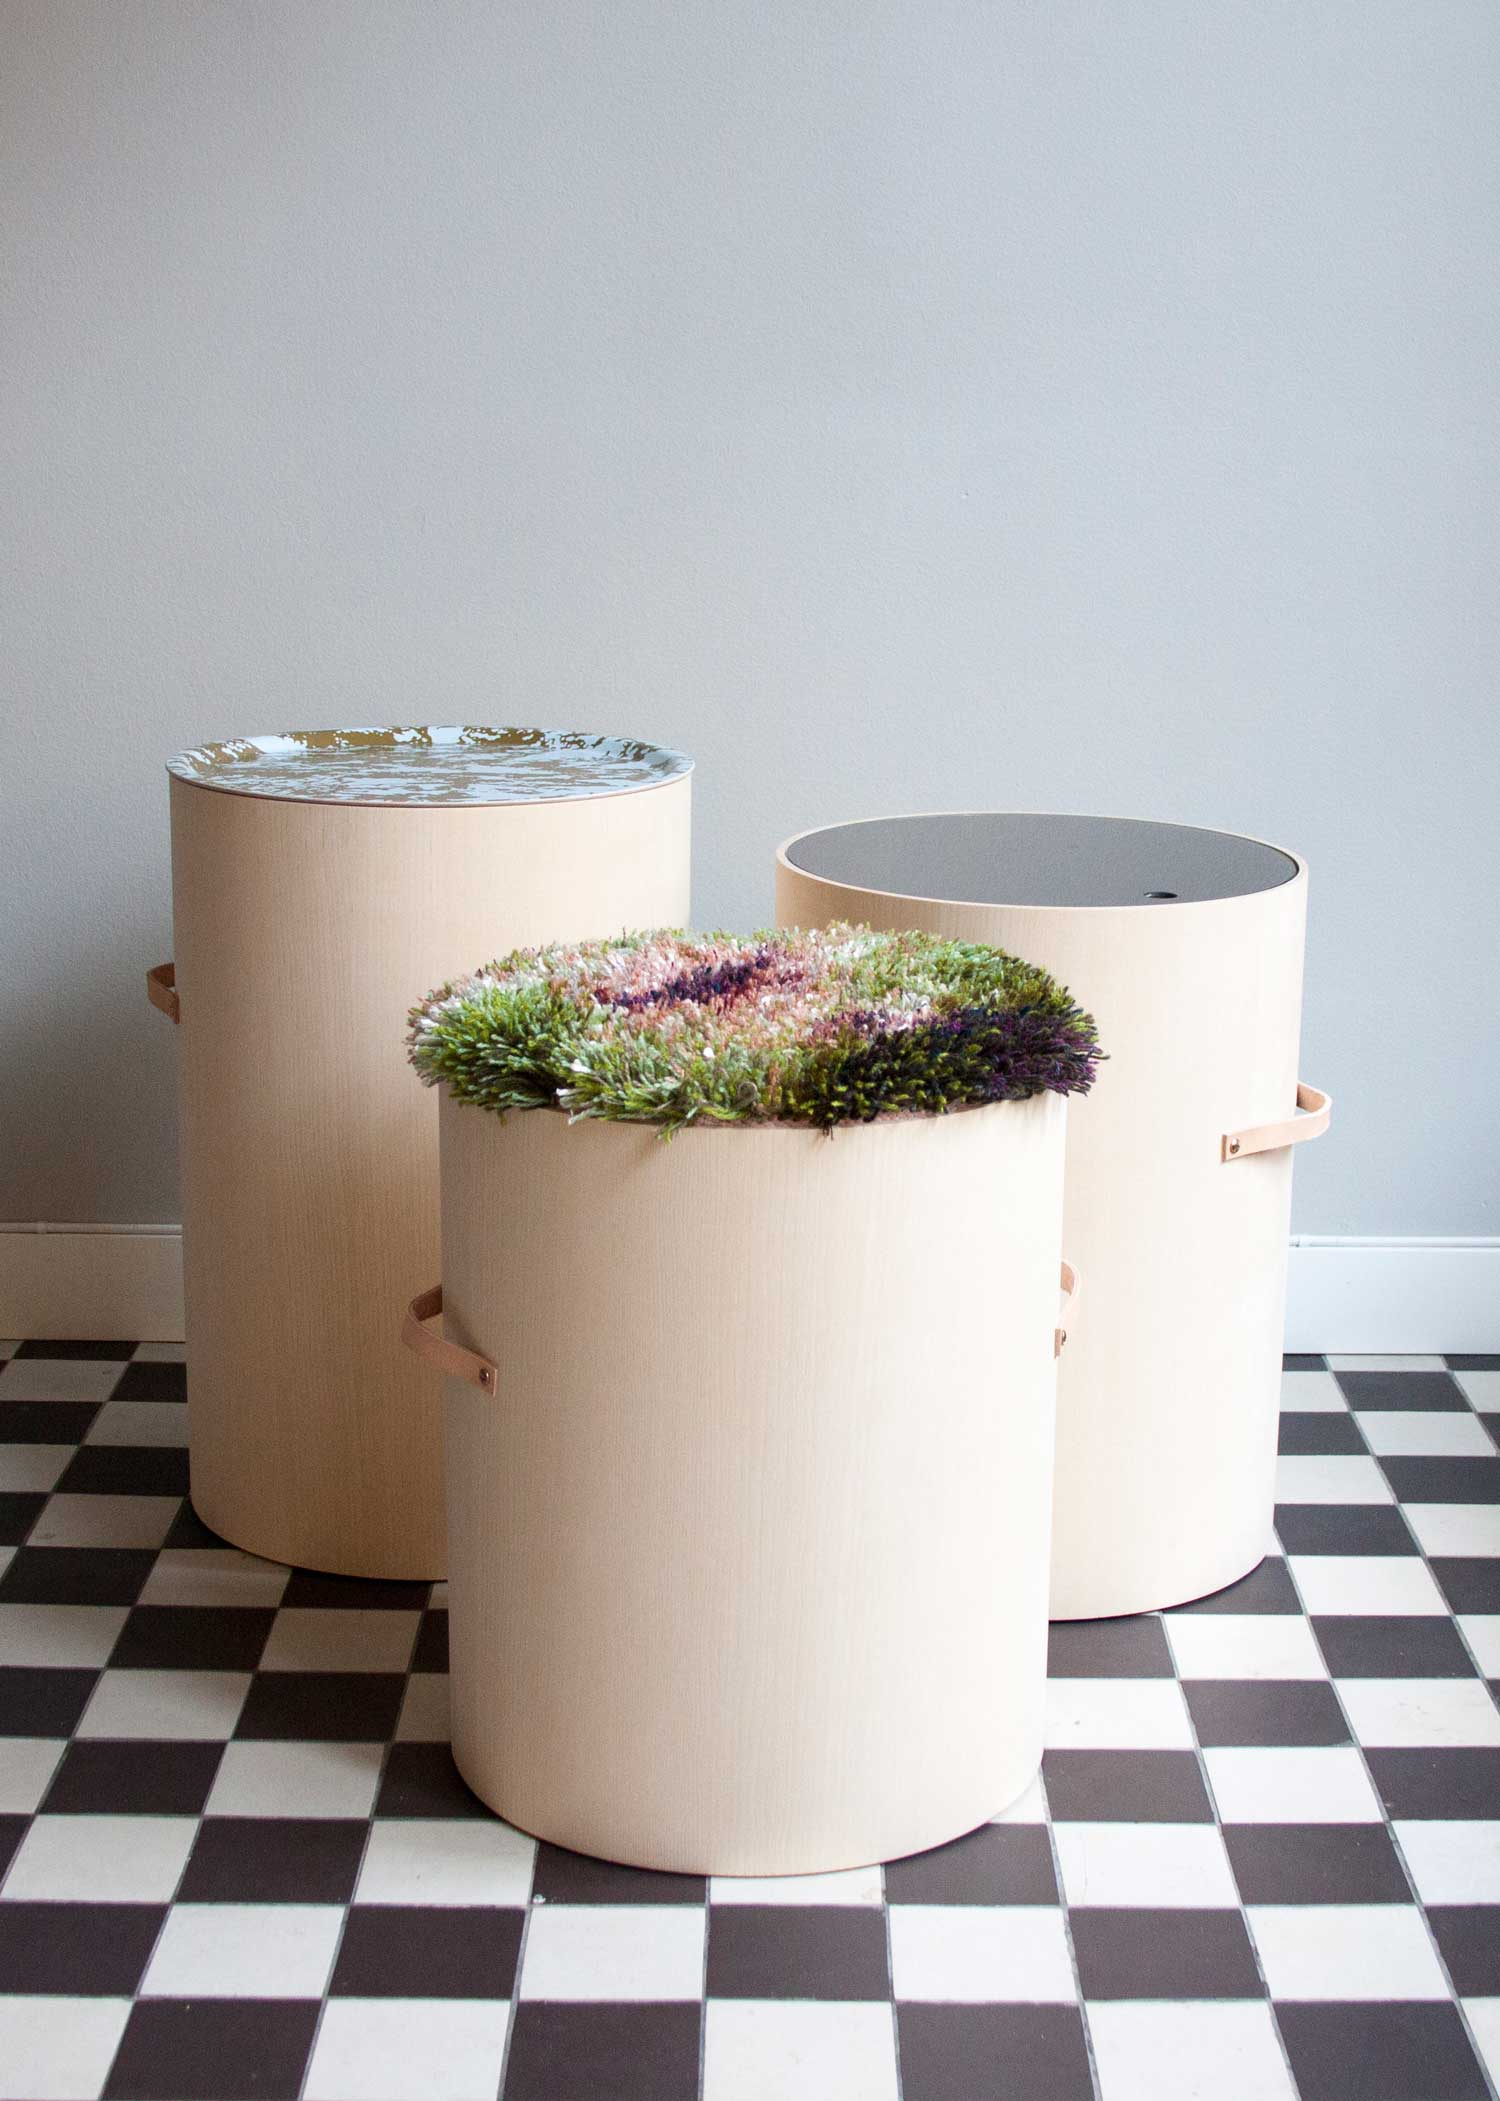 Rotunda by Studio Amanda & Matilda and Sophia Lithell at Stockholm Design Week 2015 | Yellowtrace